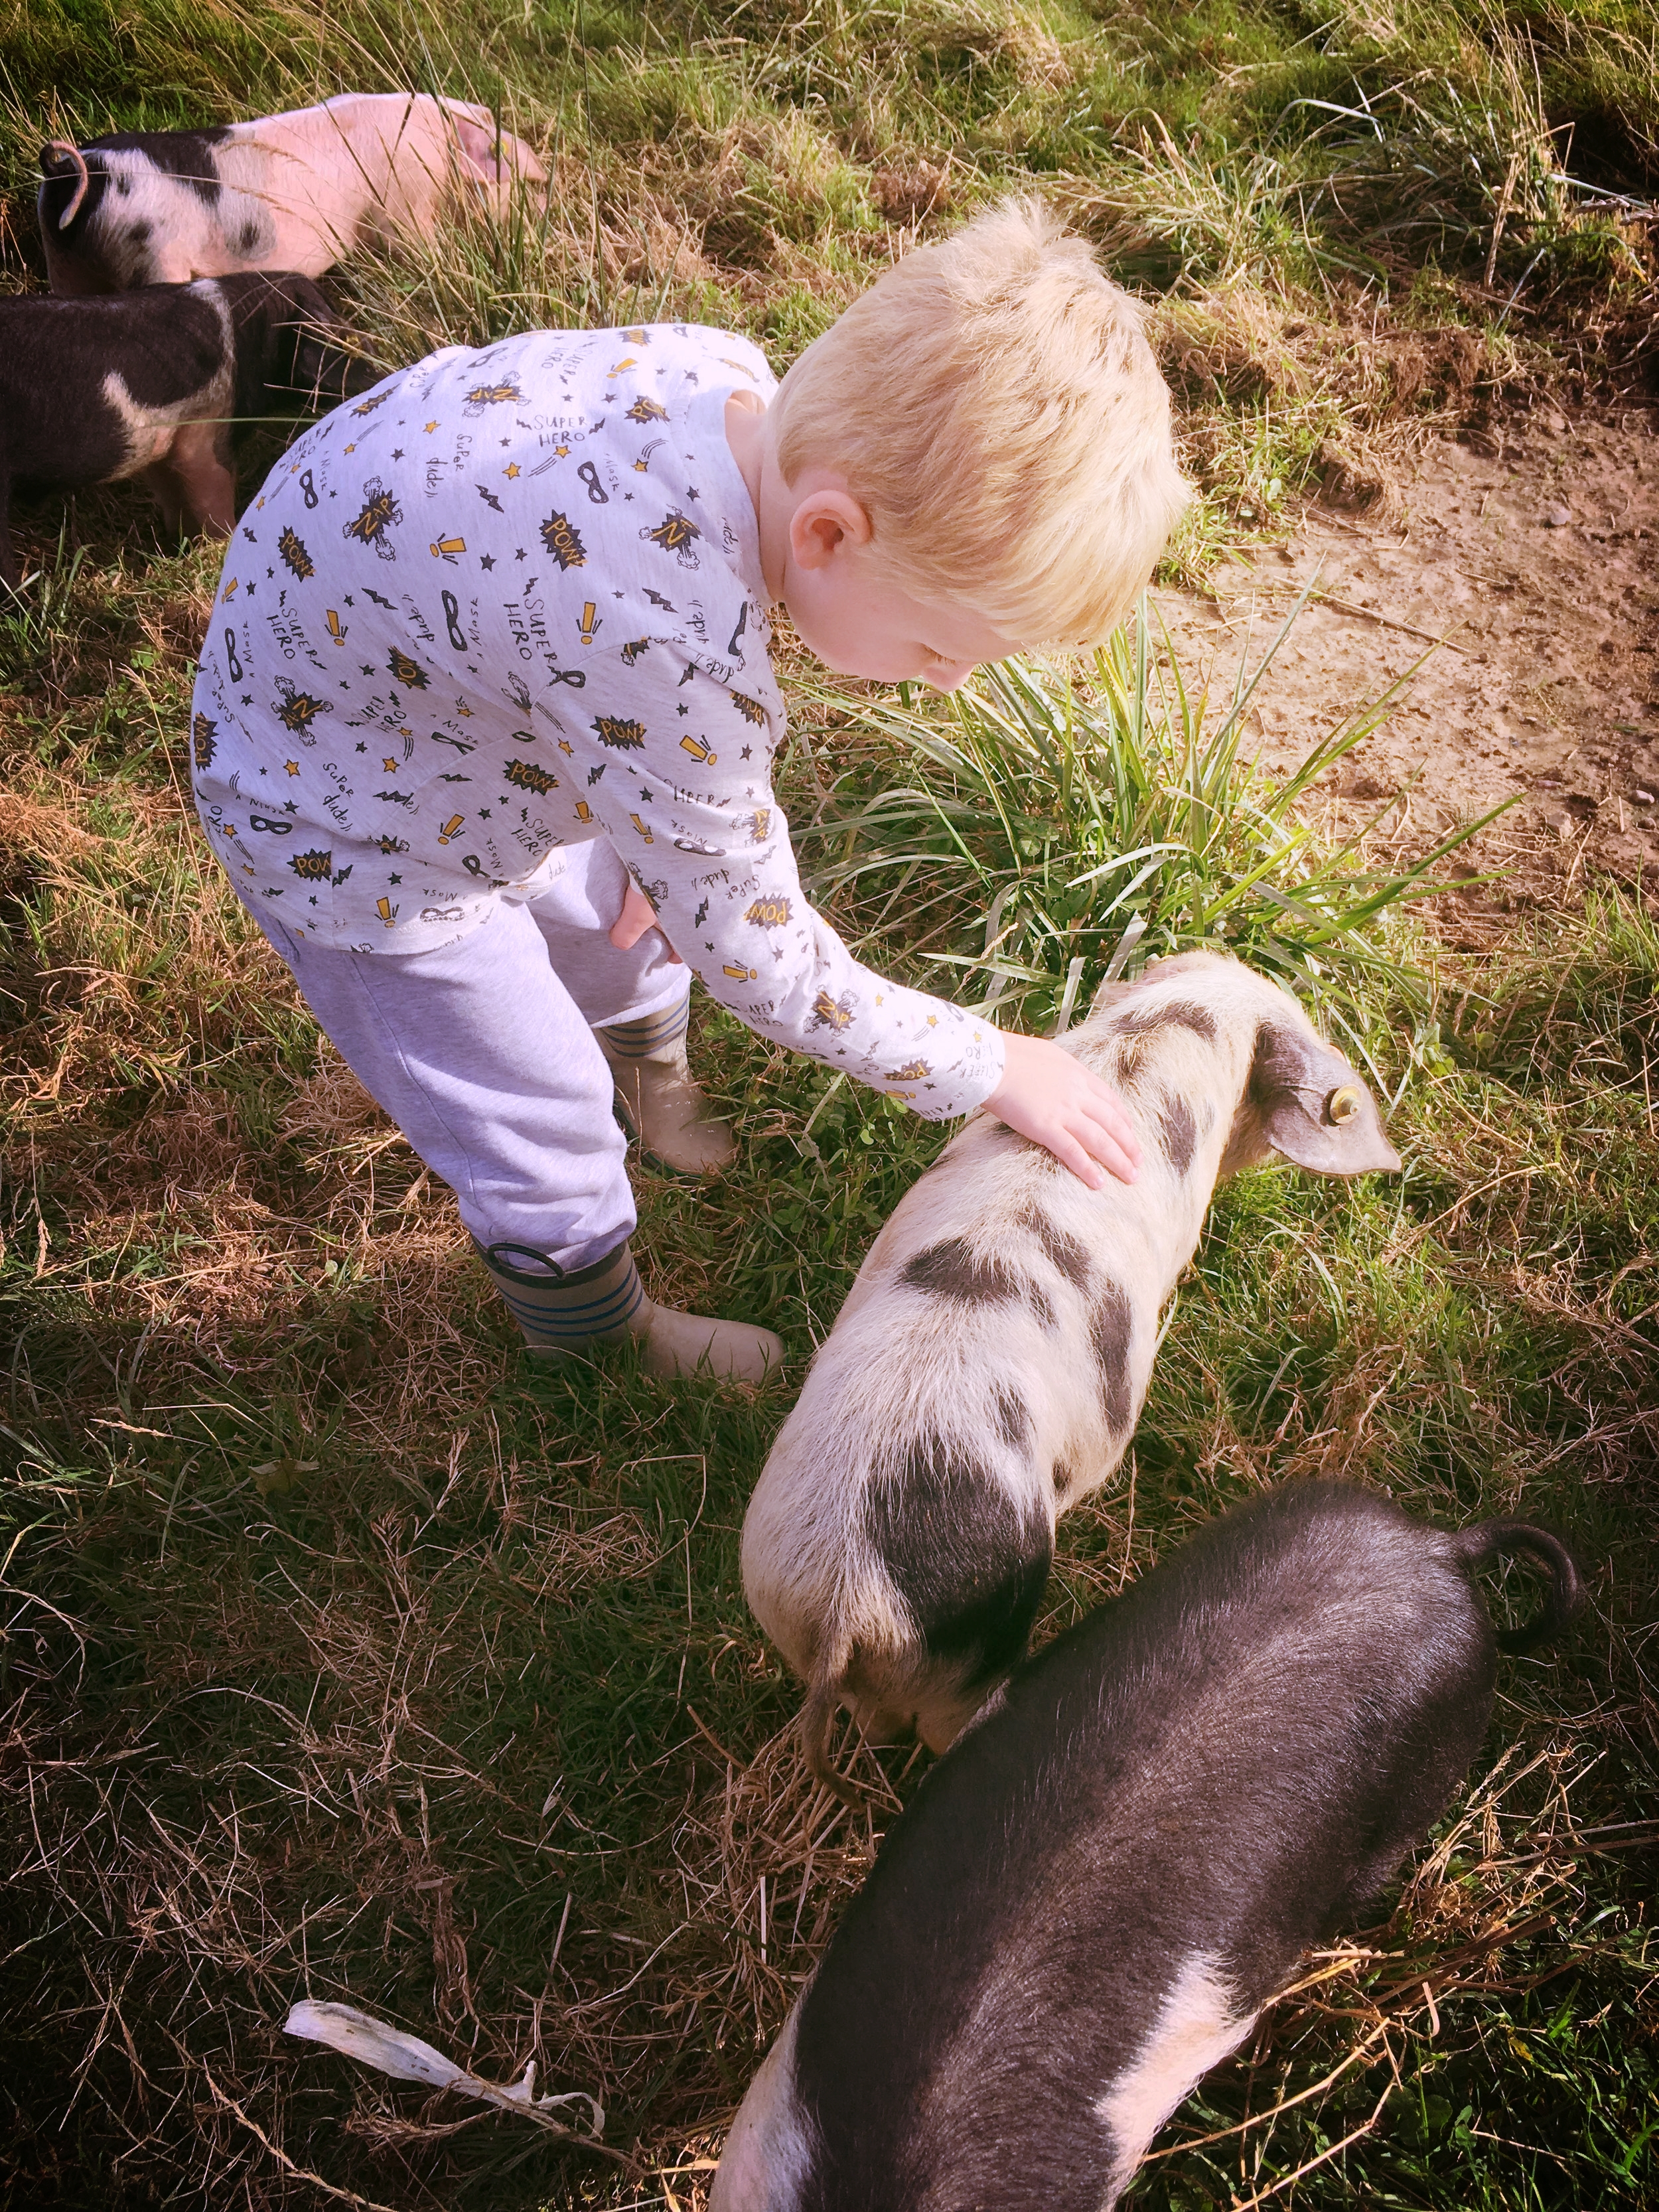 Mucking in with the pigs